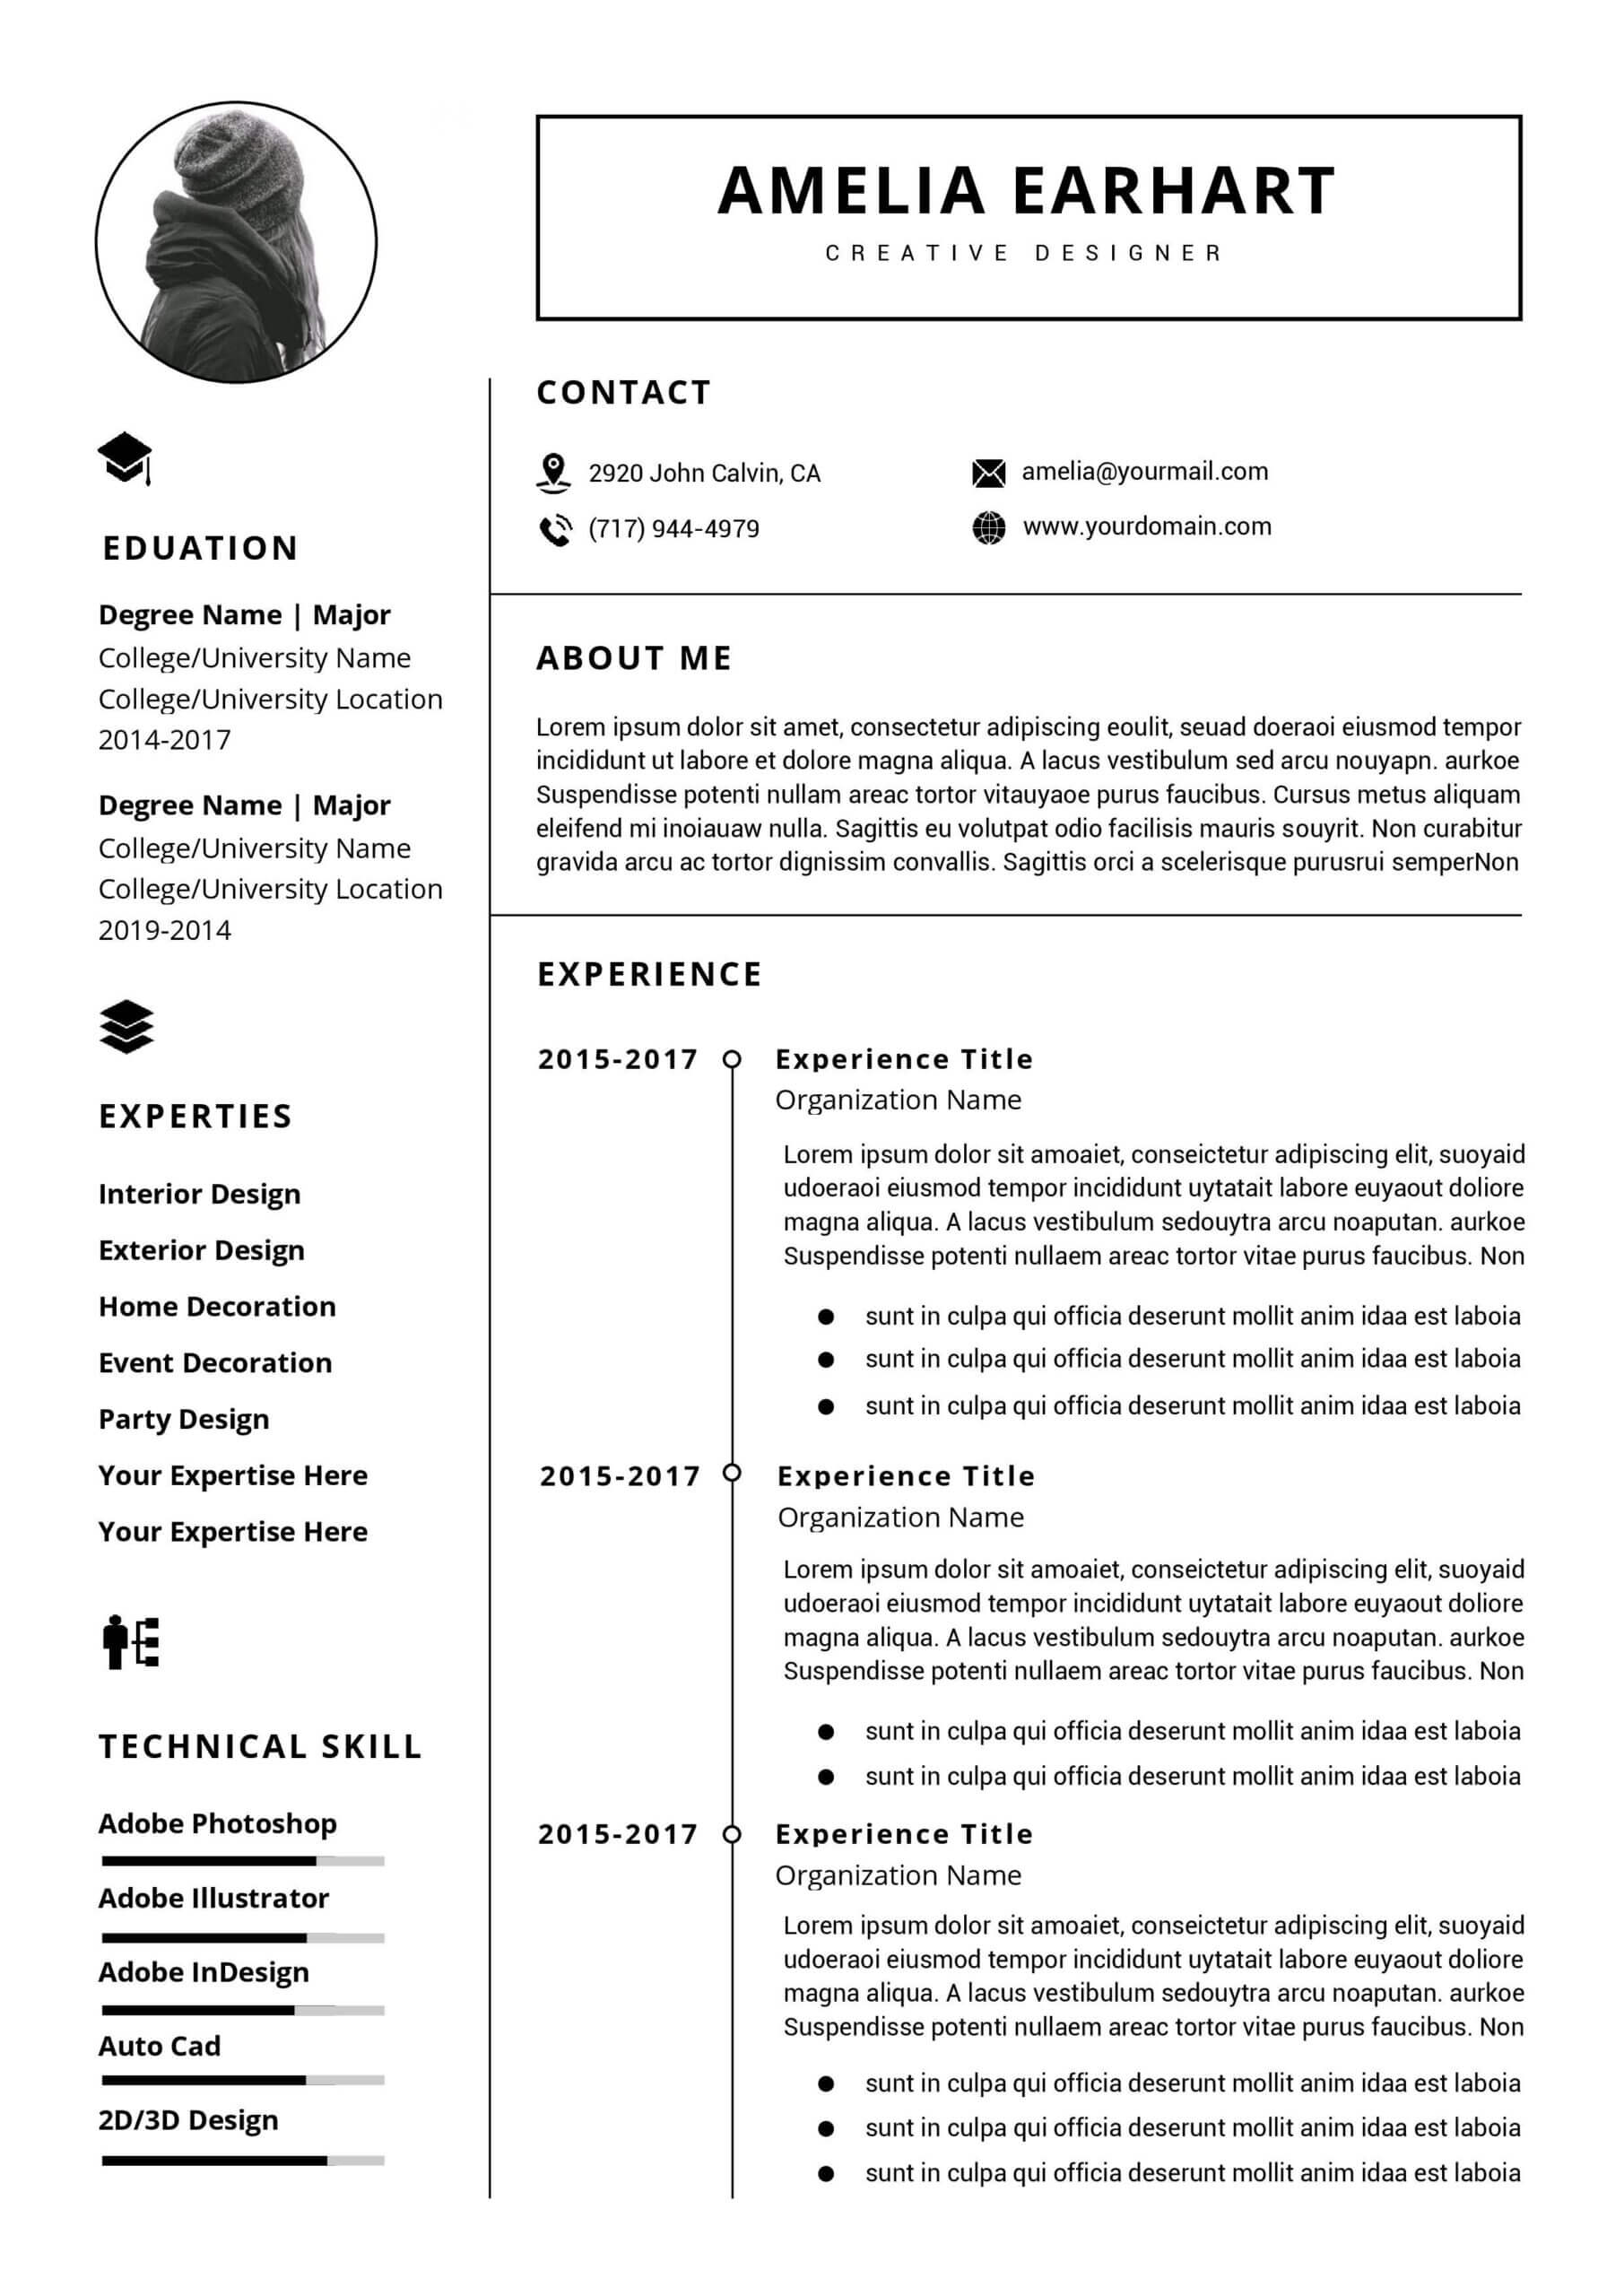 Professional Resume Template Instant Download, 3 Page Resume With Regard To How To Get A Resume Template On Word